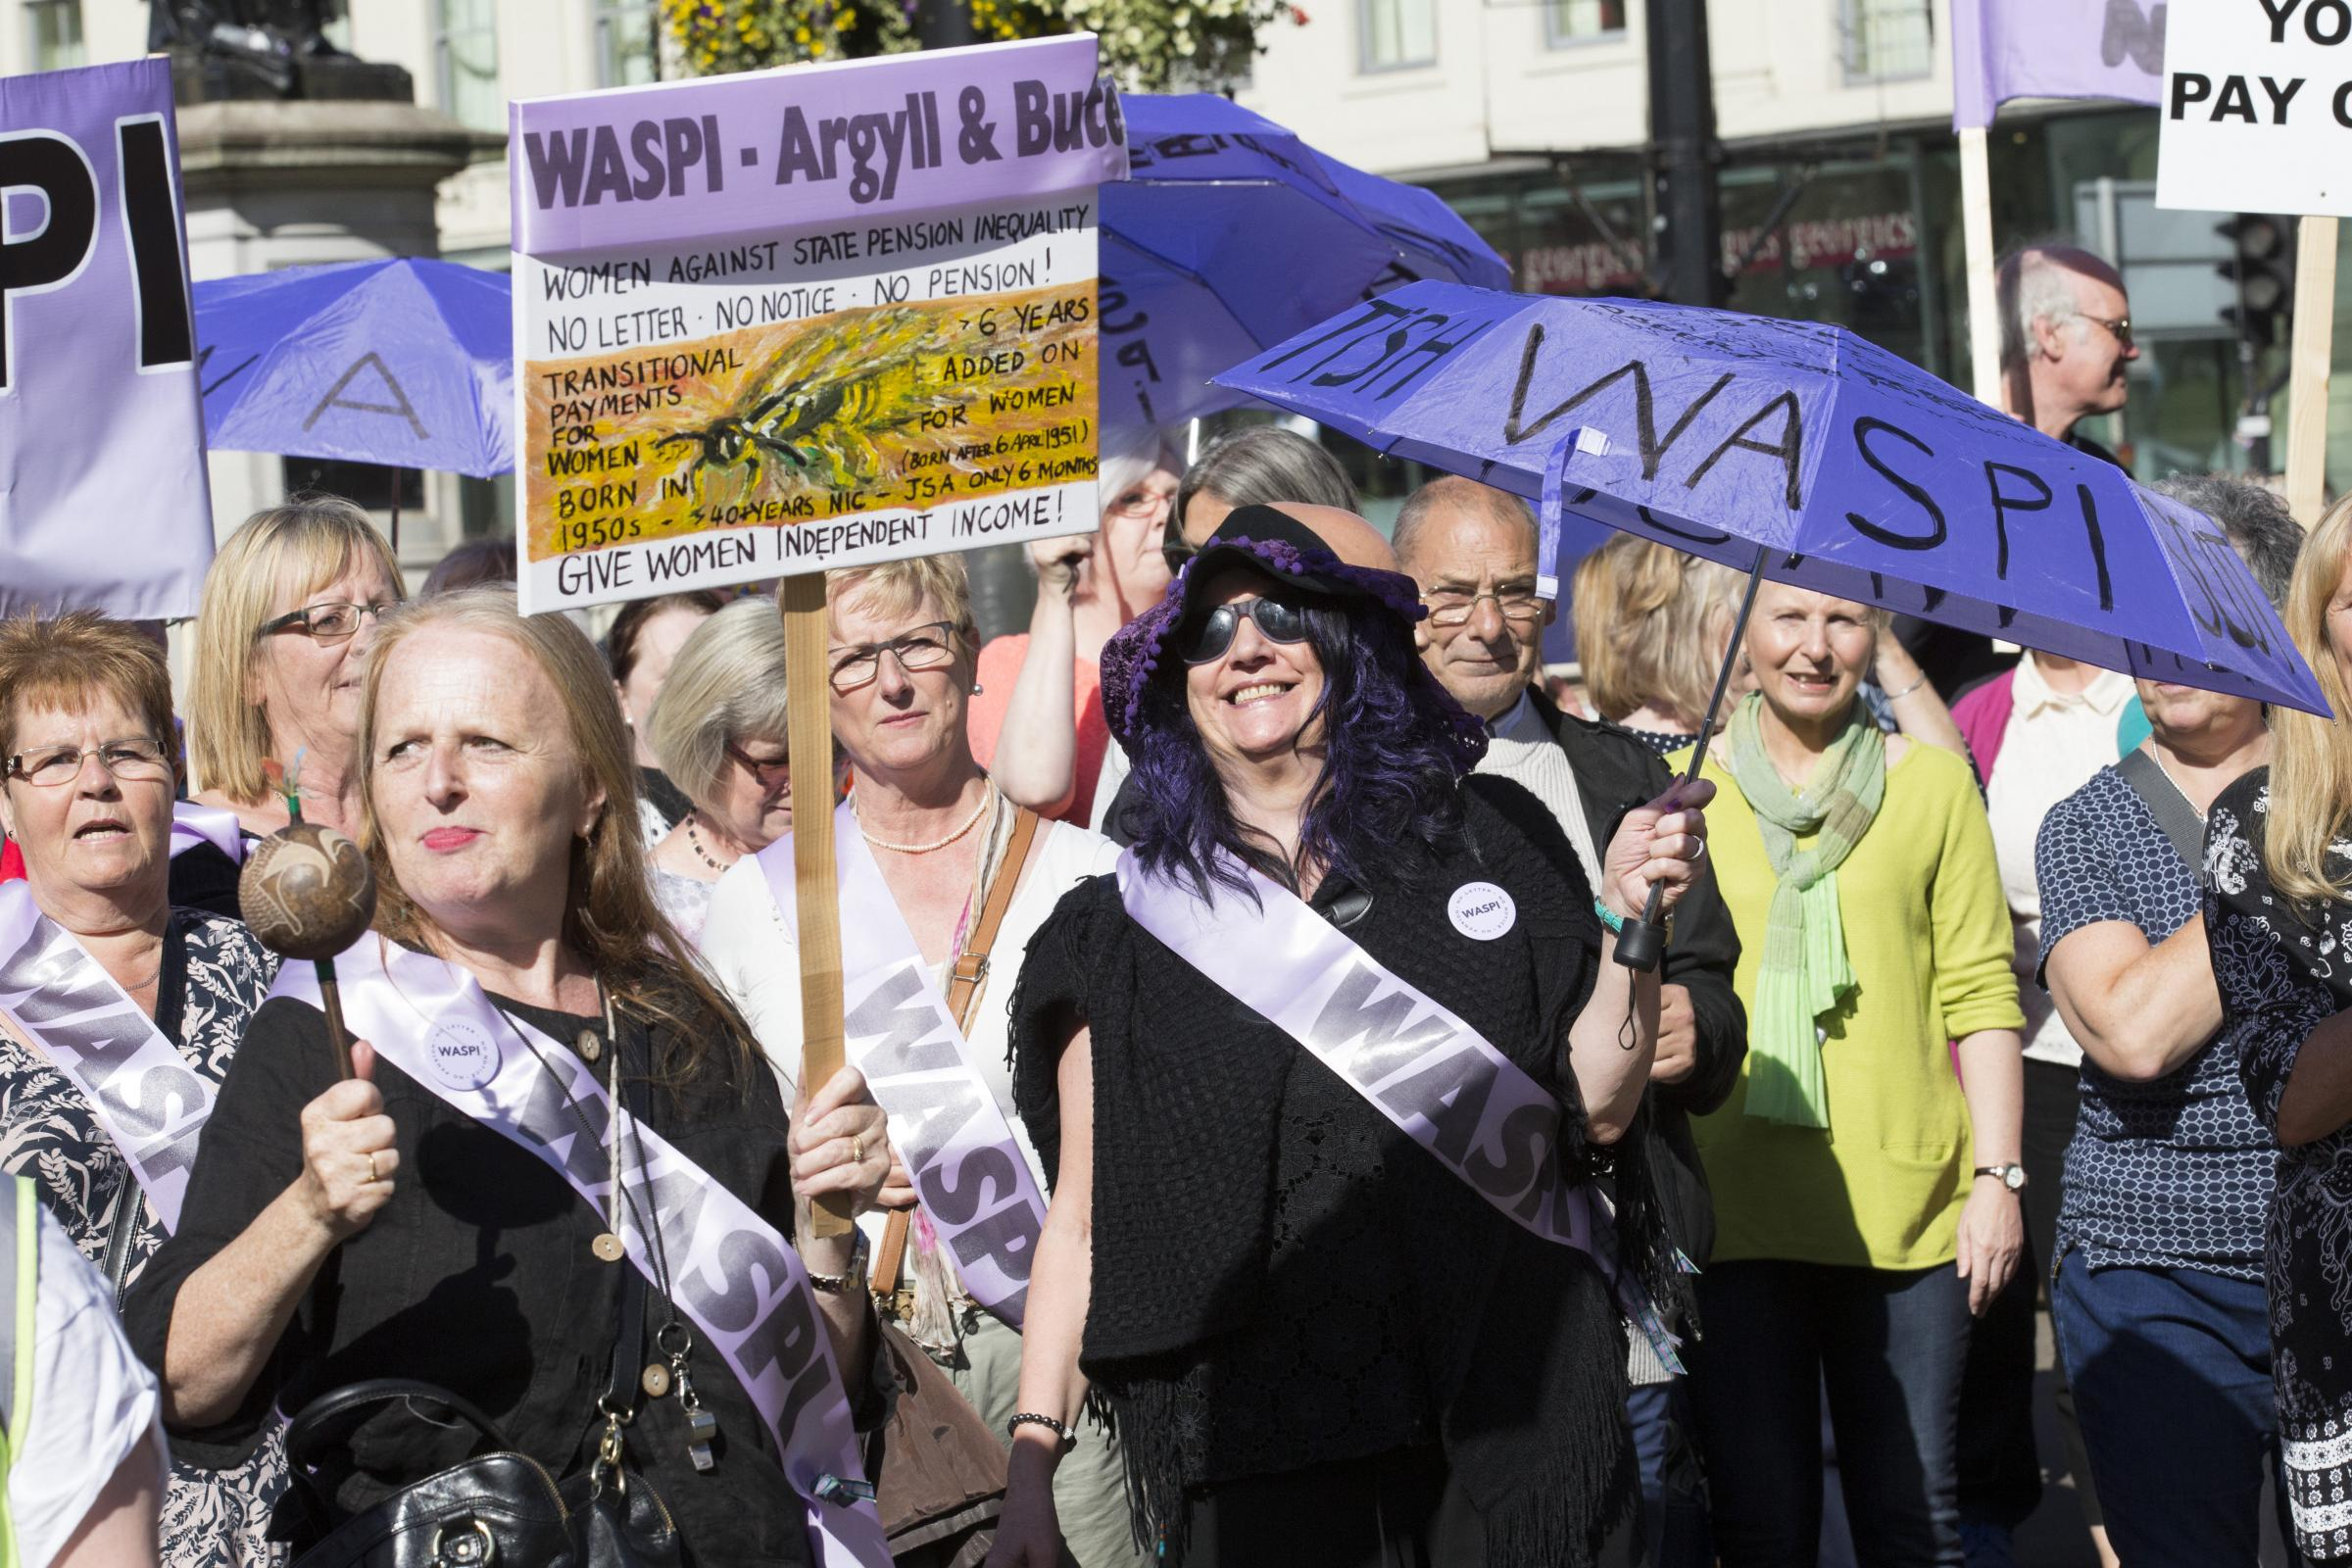 The WASPI protest in London yesterday